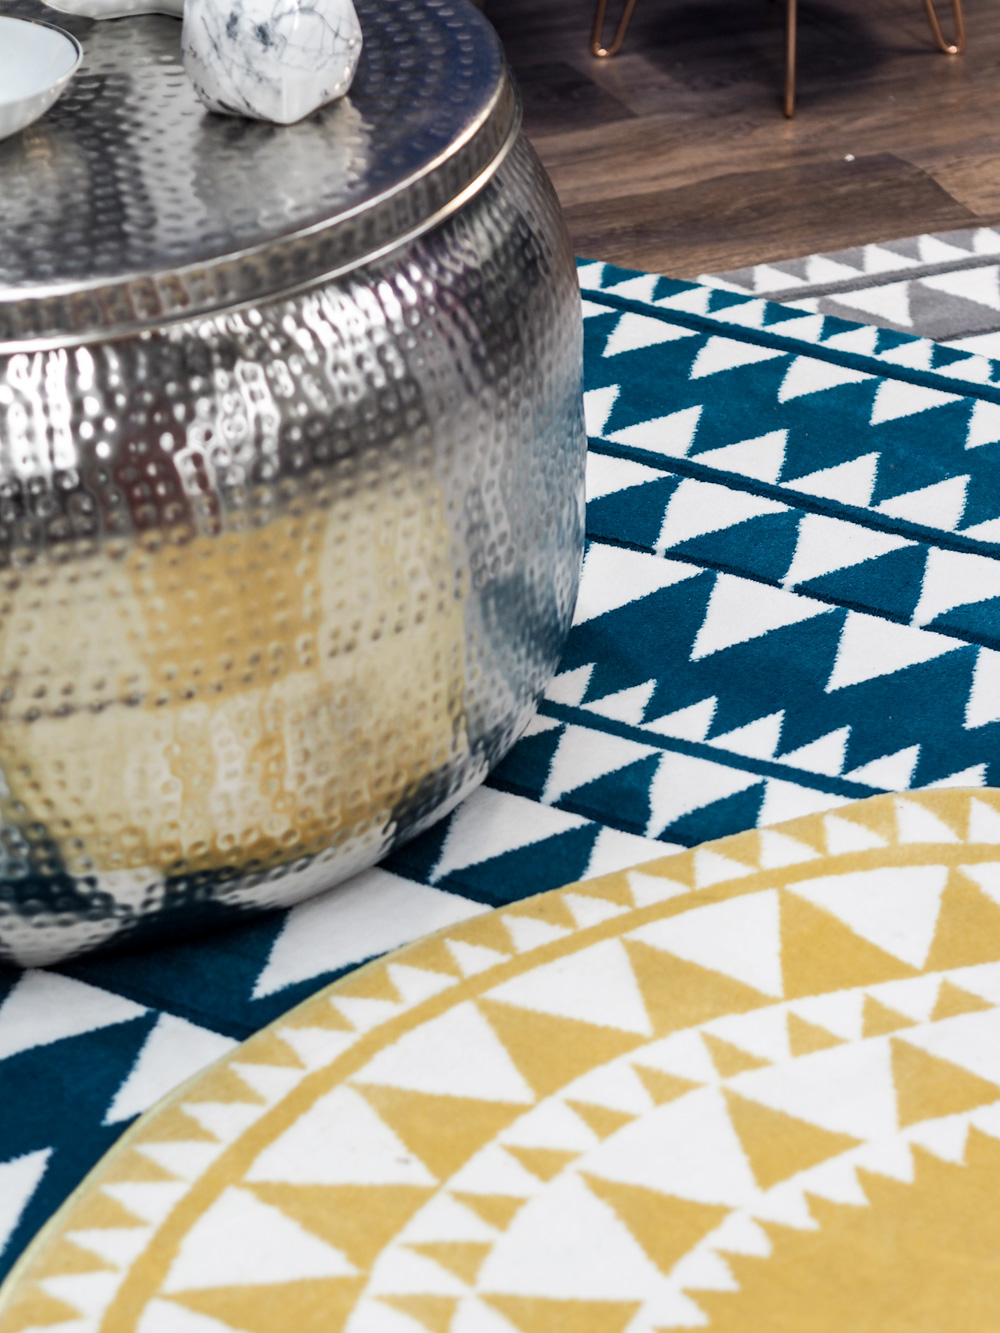 Geo printed rugs from Studio.co.uk, the home of affordable interiors